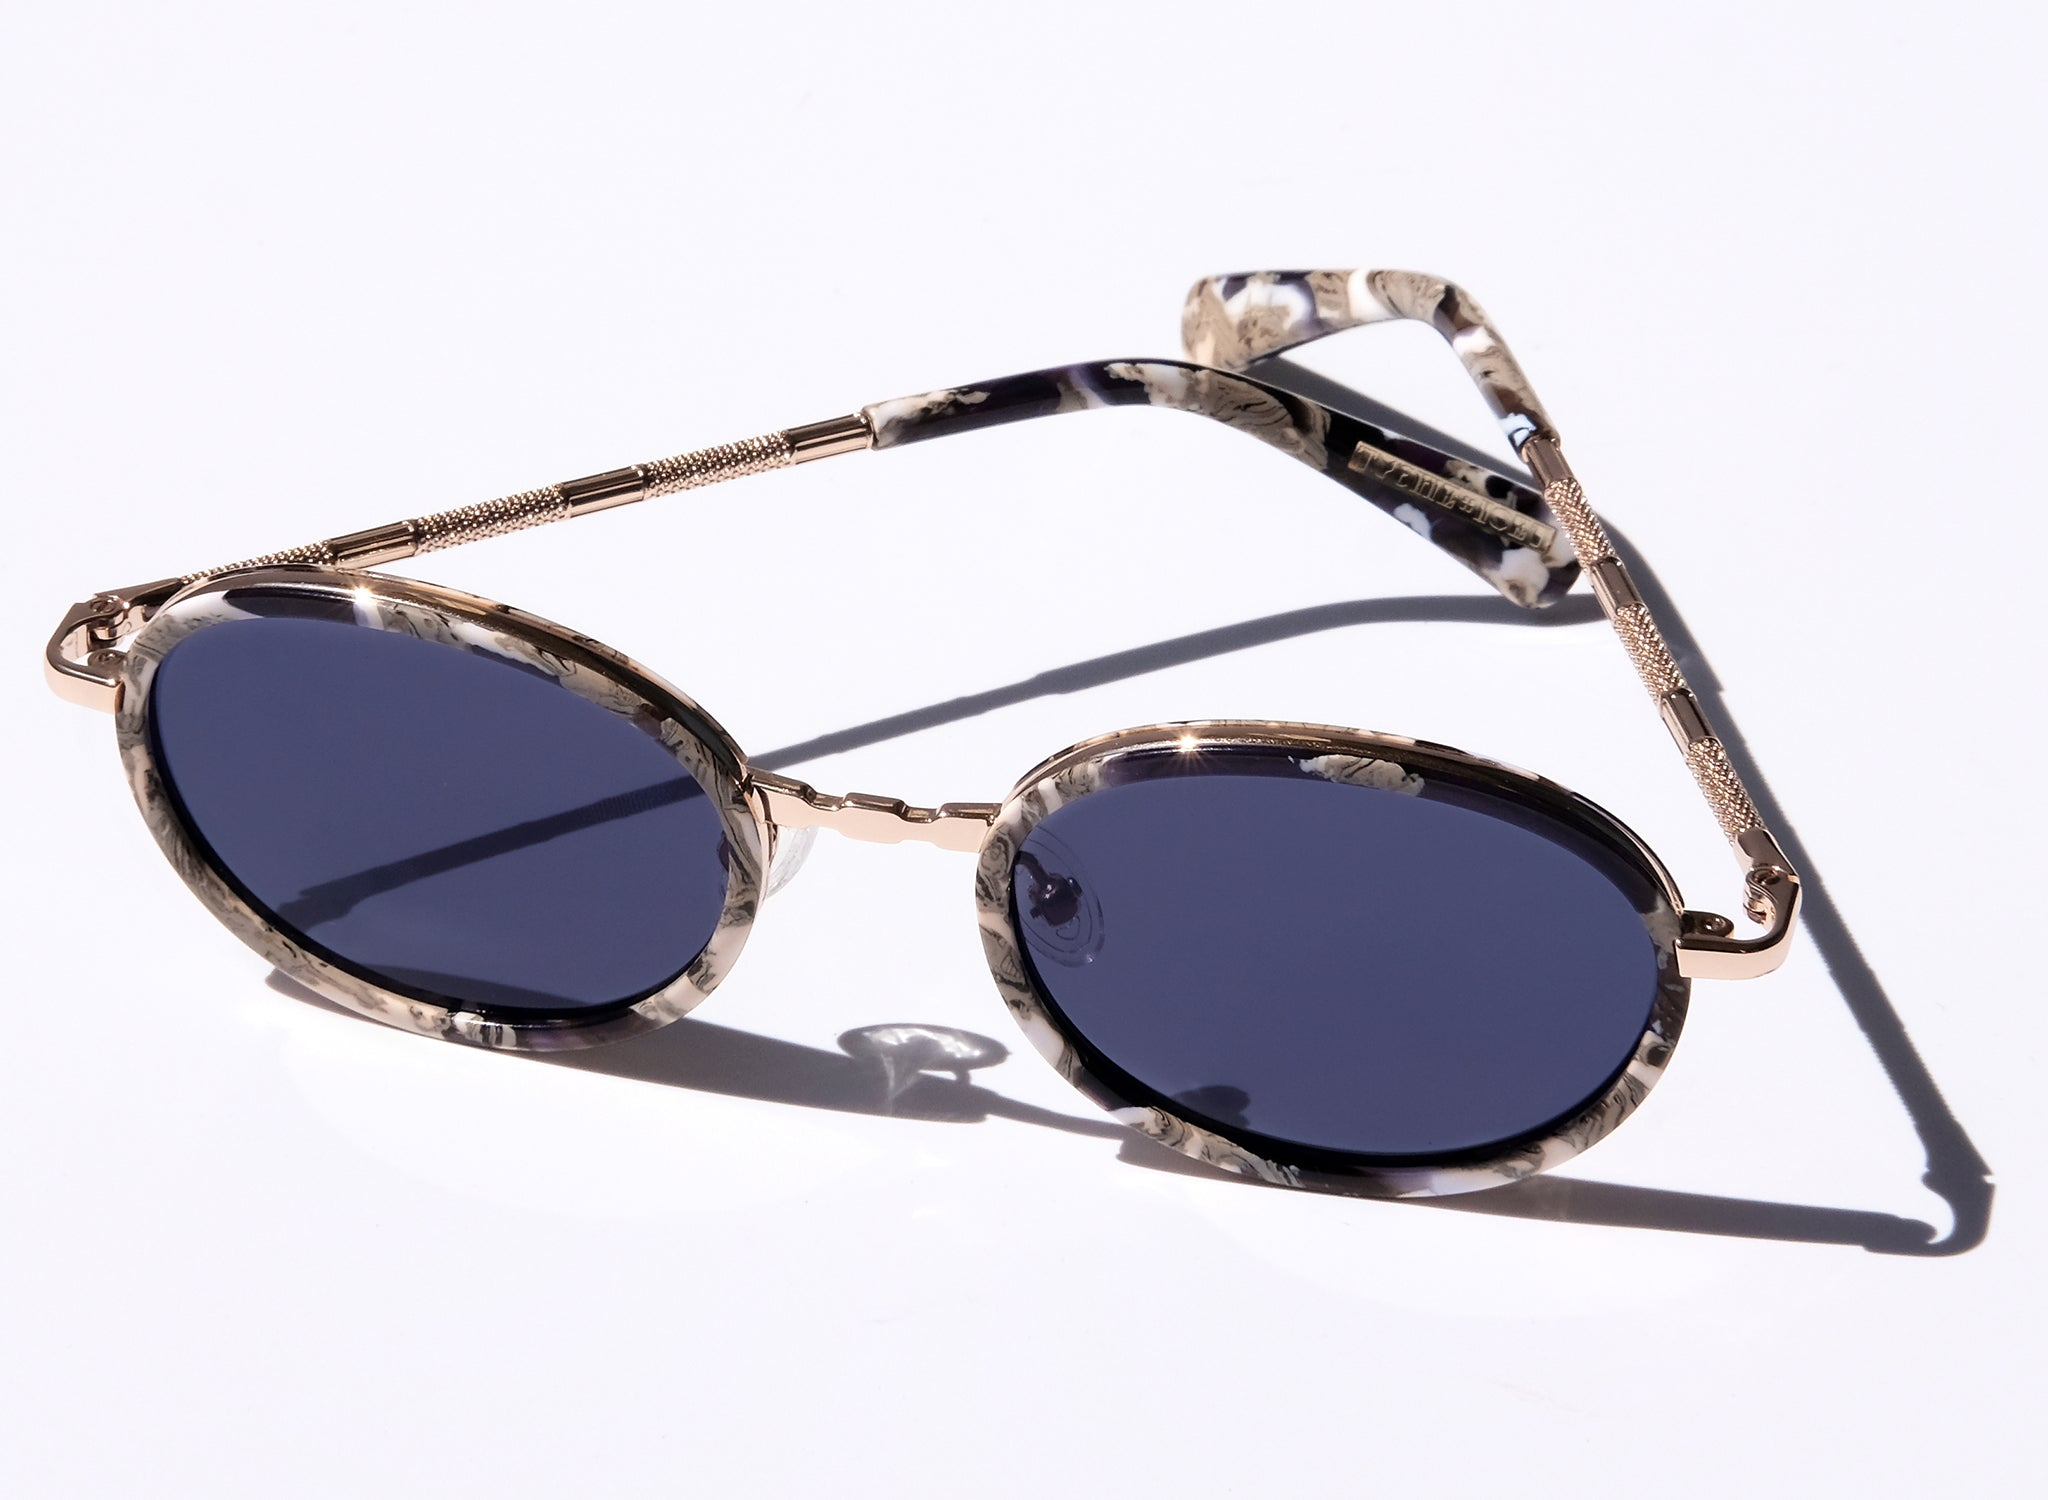 LAS IGUANAS IN KINGDOM. CLASSIC OVAL GOLD SUNGLASSES